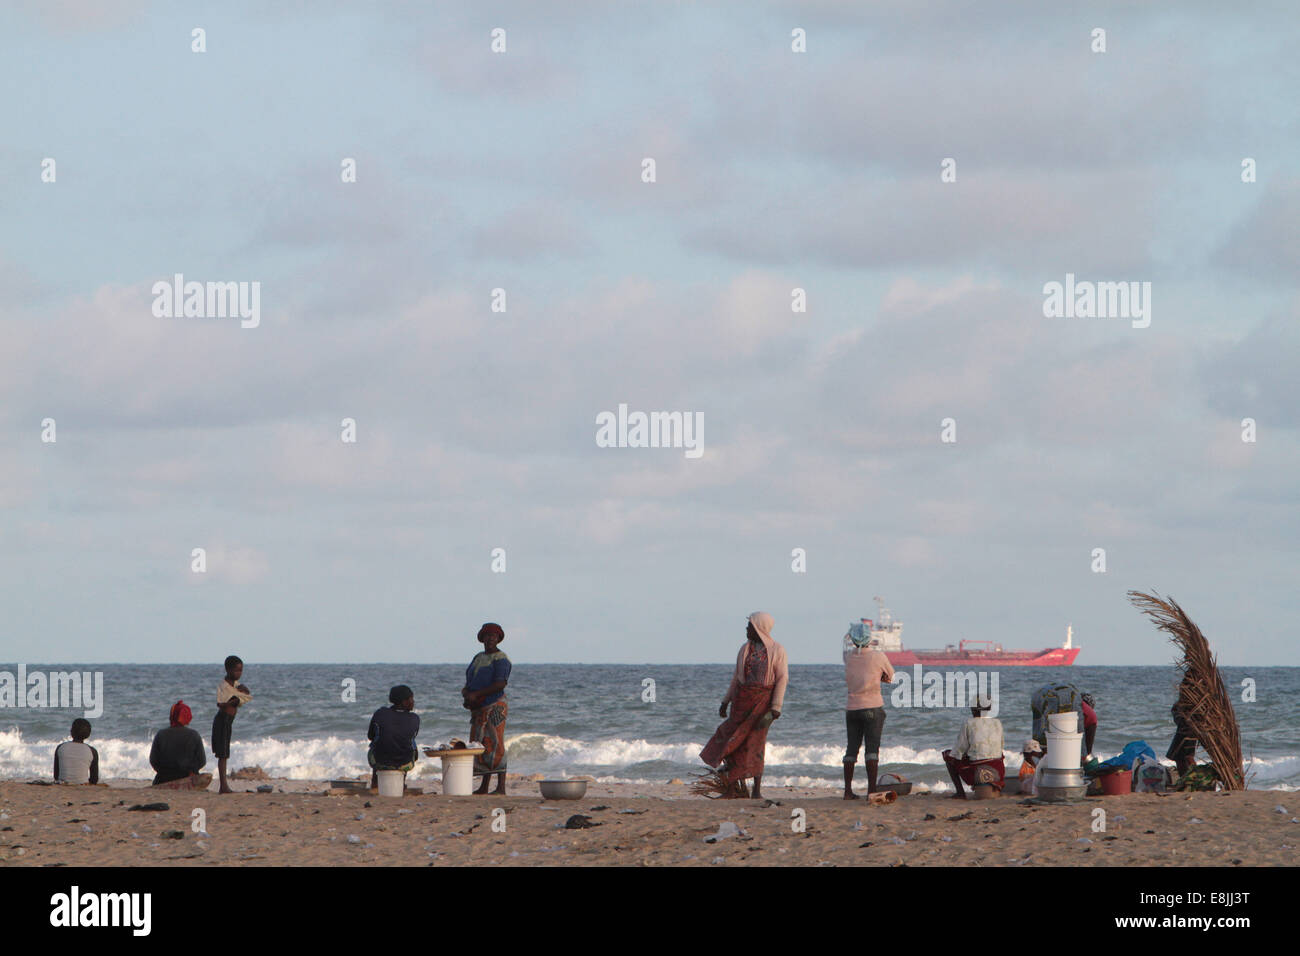 Africans on the beach. - Stock Image